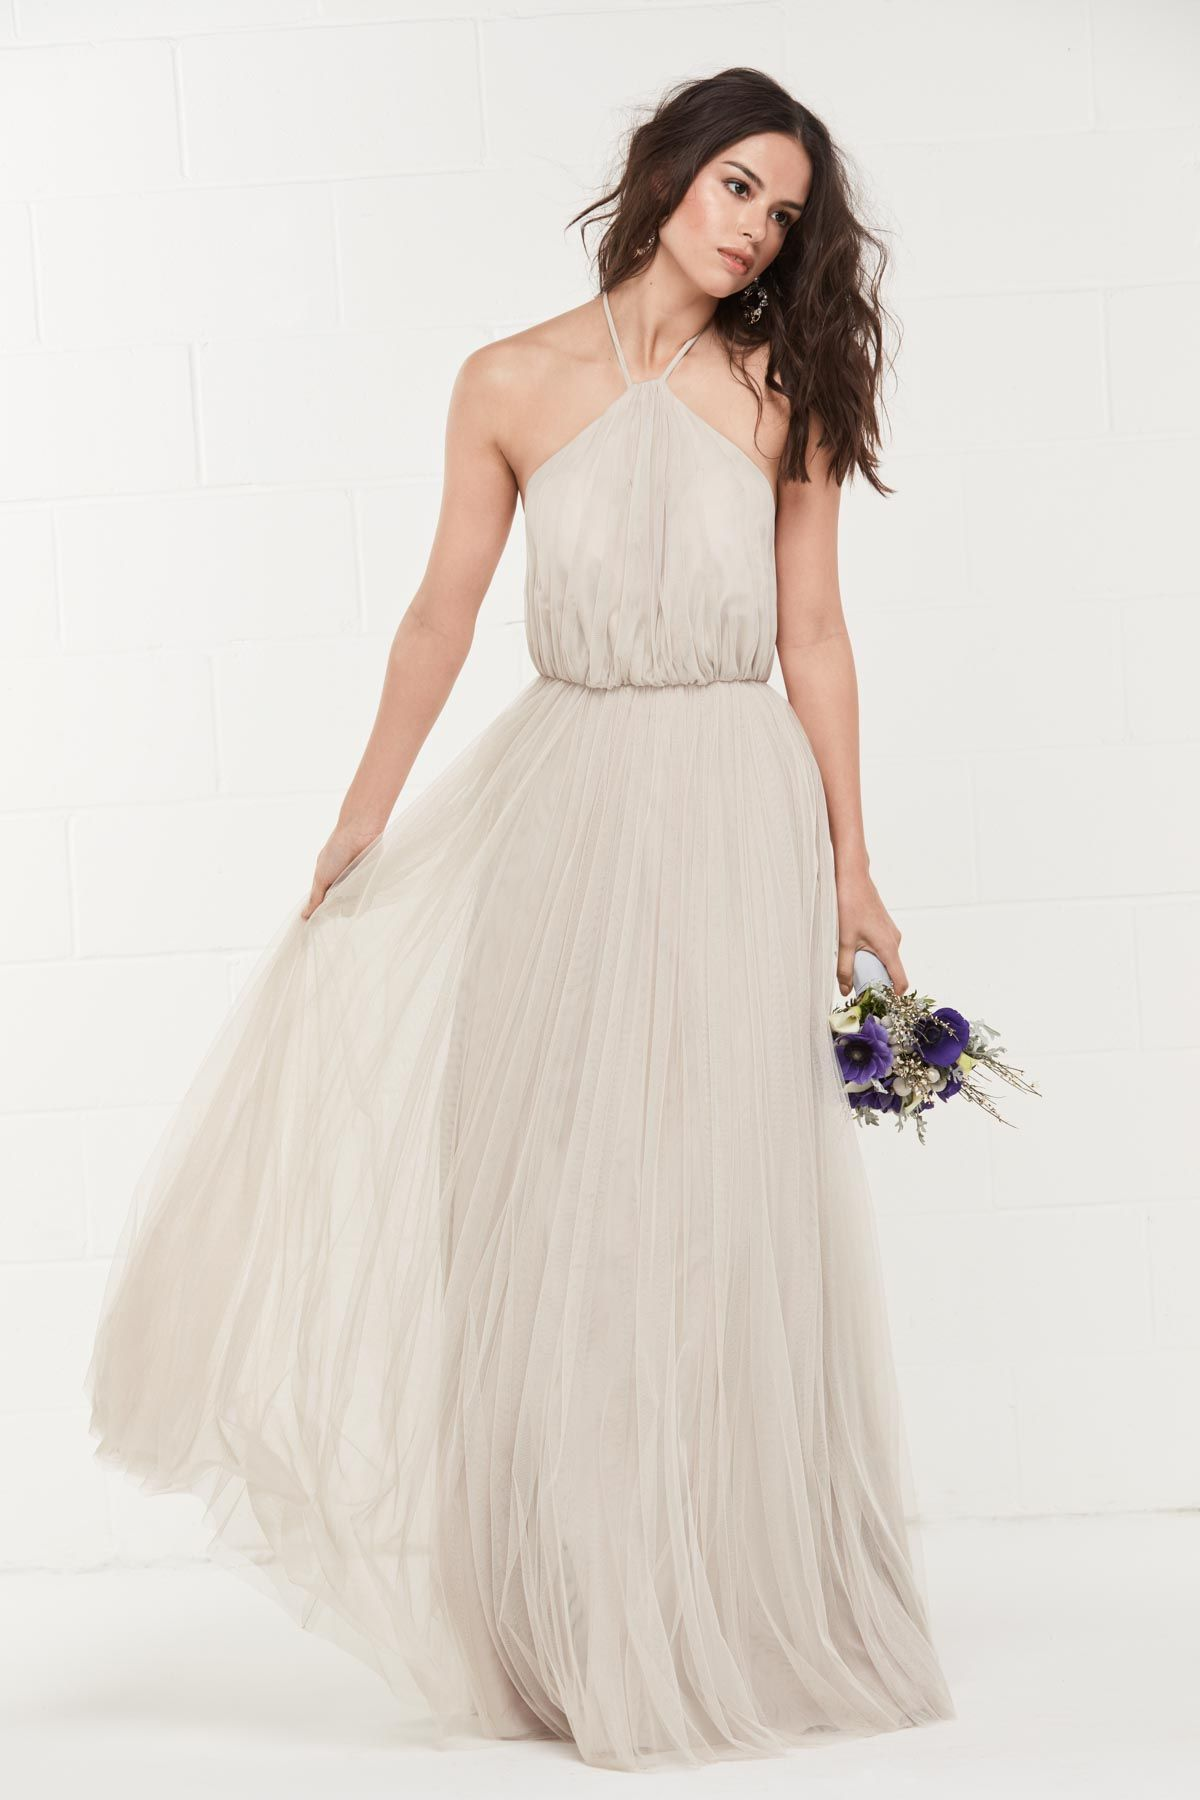 ff04de38c4e 440 Wtoo by Watters Bridesmaid Dress (latte) I like how this is airy and  how it flows. I also like the neckline. The color is also a nice neutral ( latte).